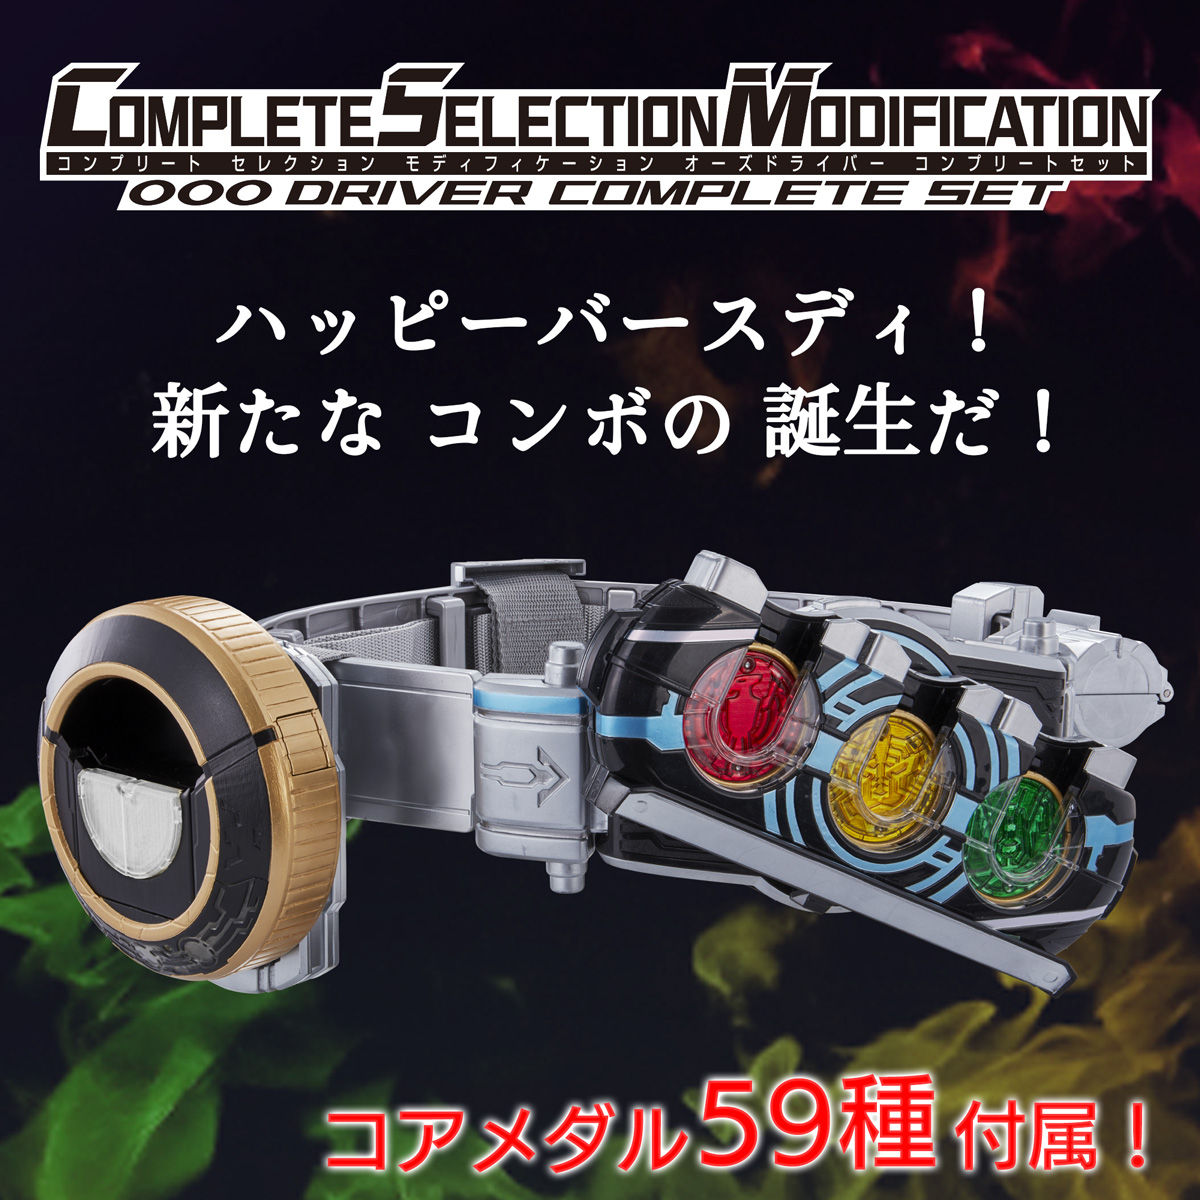 COMPLETE SELECTION MODIFICATION OOO DRIVER COMPLETE SET(CSMオーズドライバーコンプリートセット)